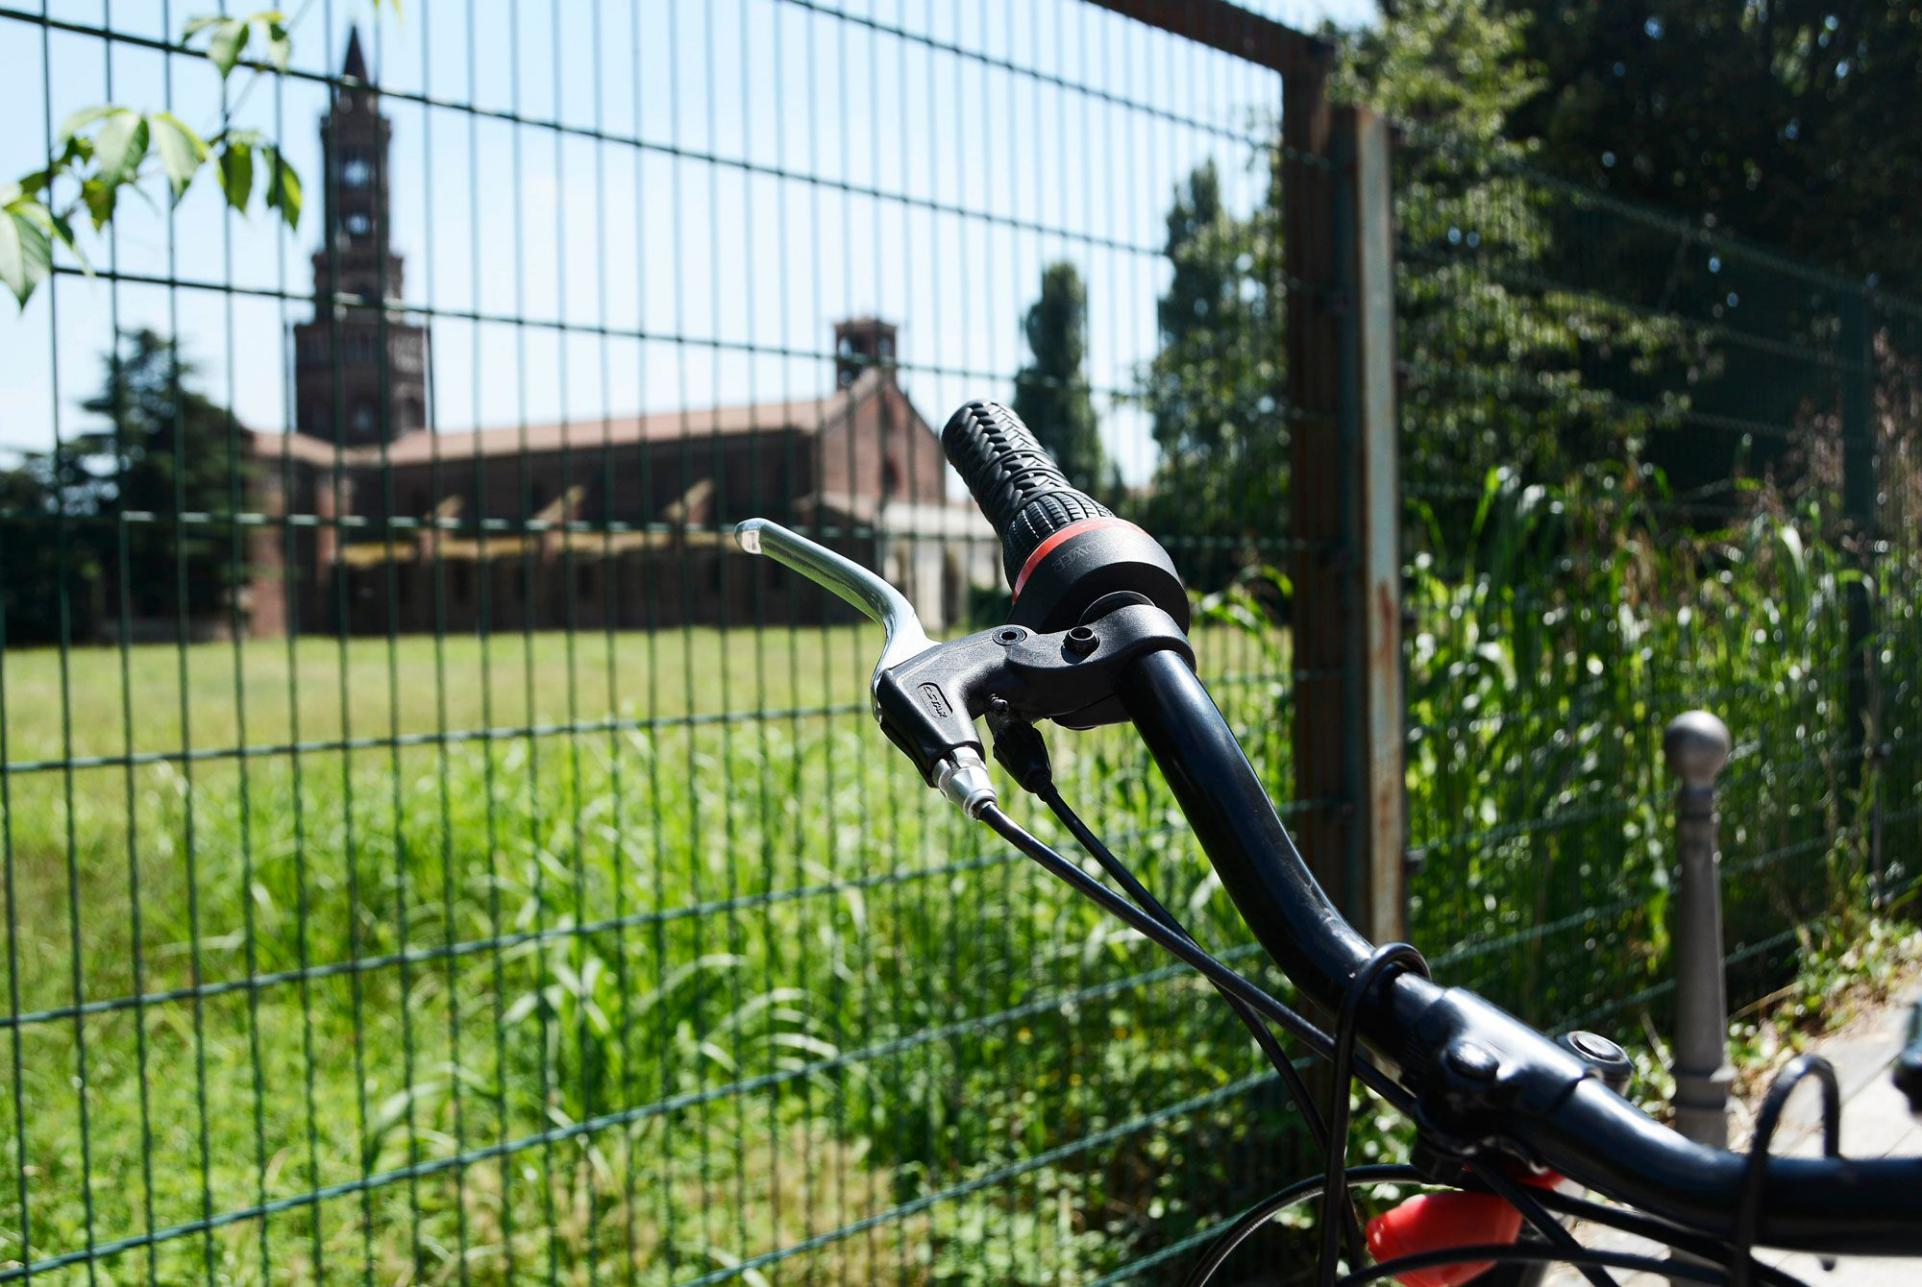 Cycling to Chiaravalle Abbey